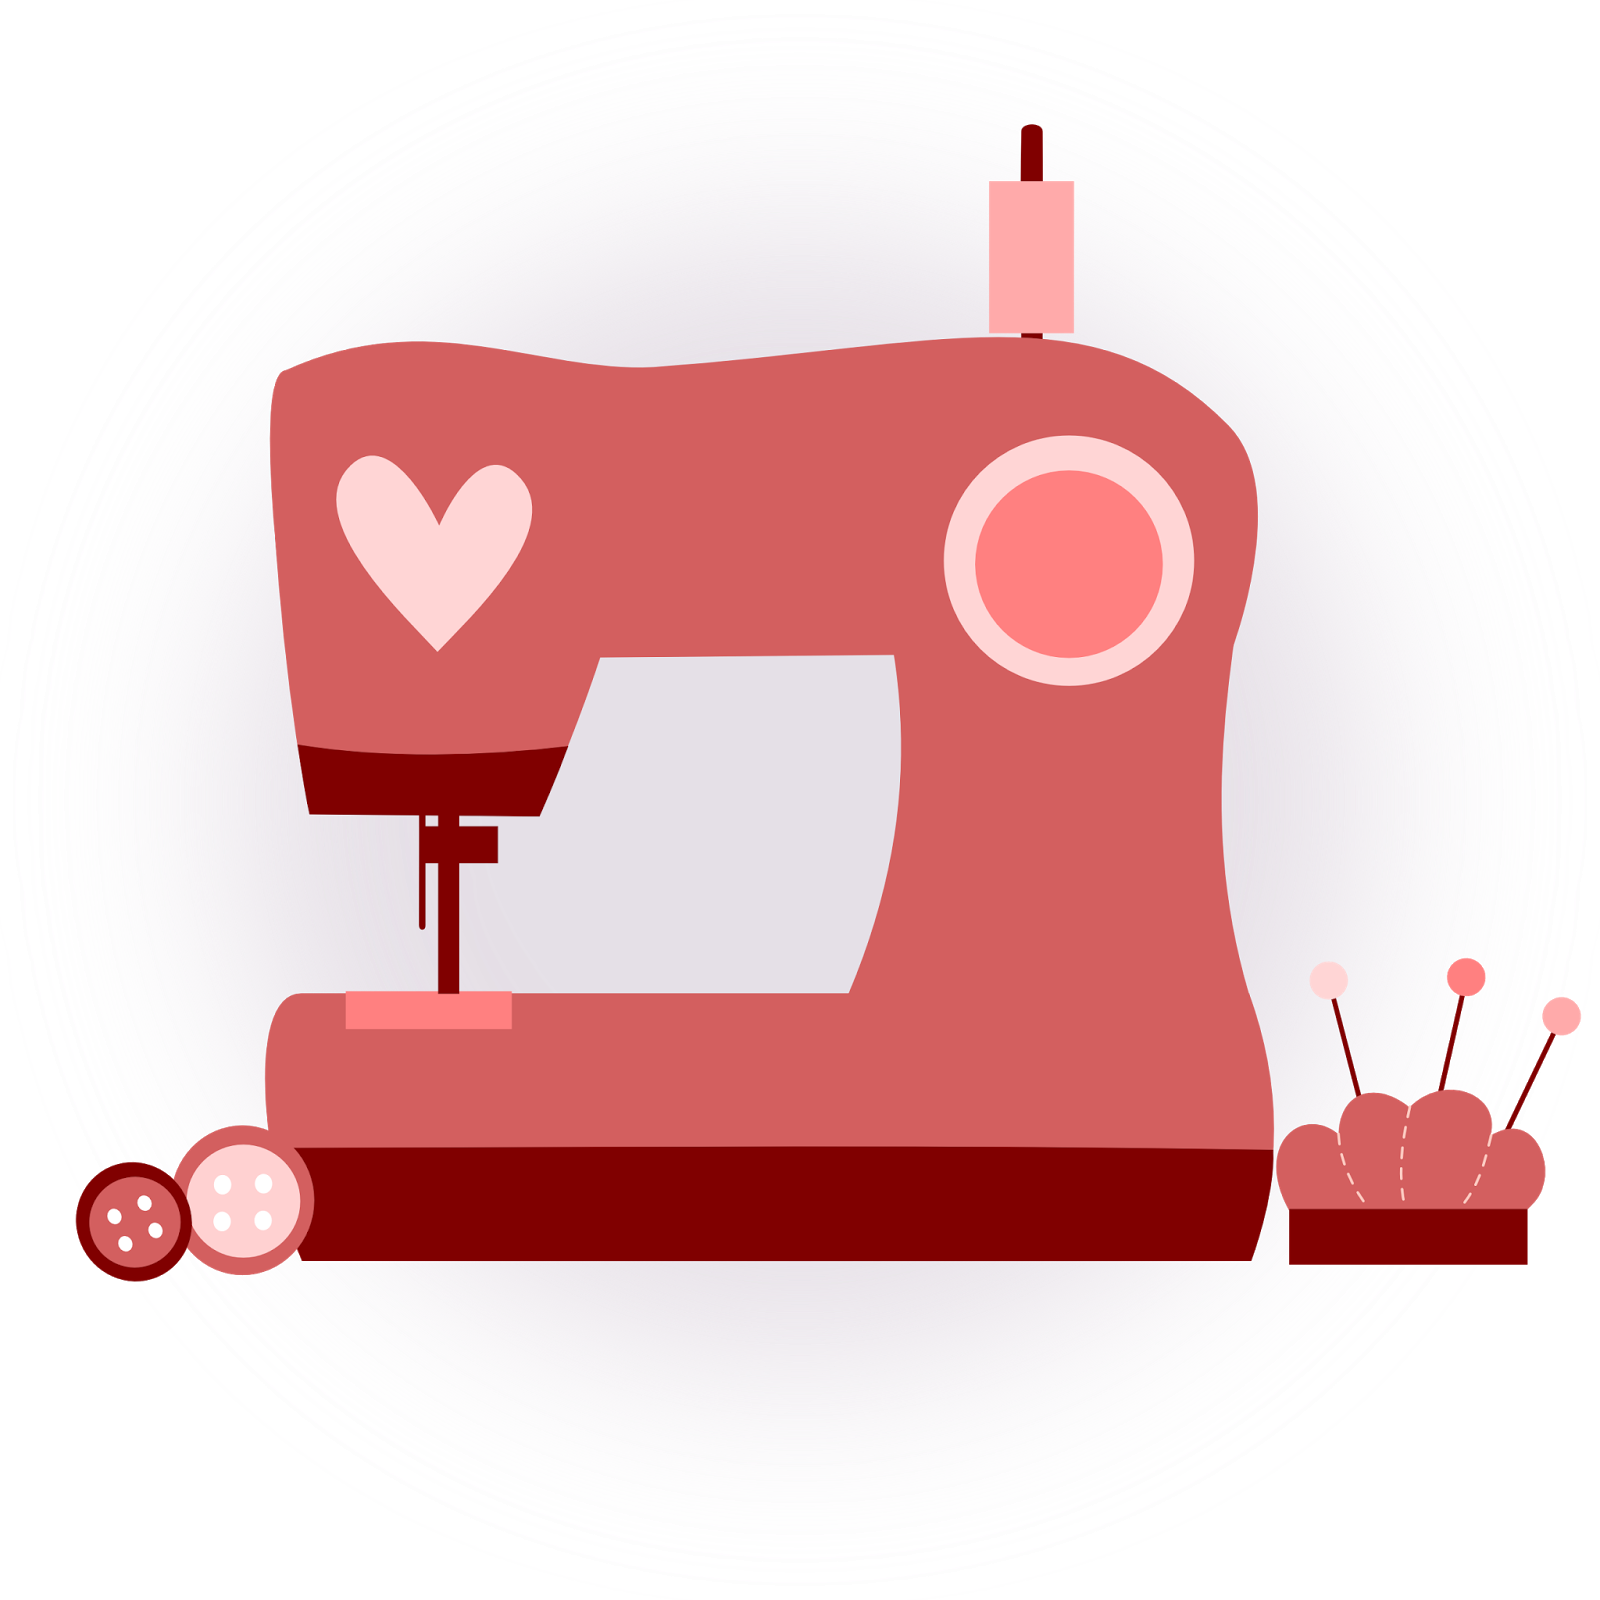 Patchwork clipart sewing Costura art máquina coser coser